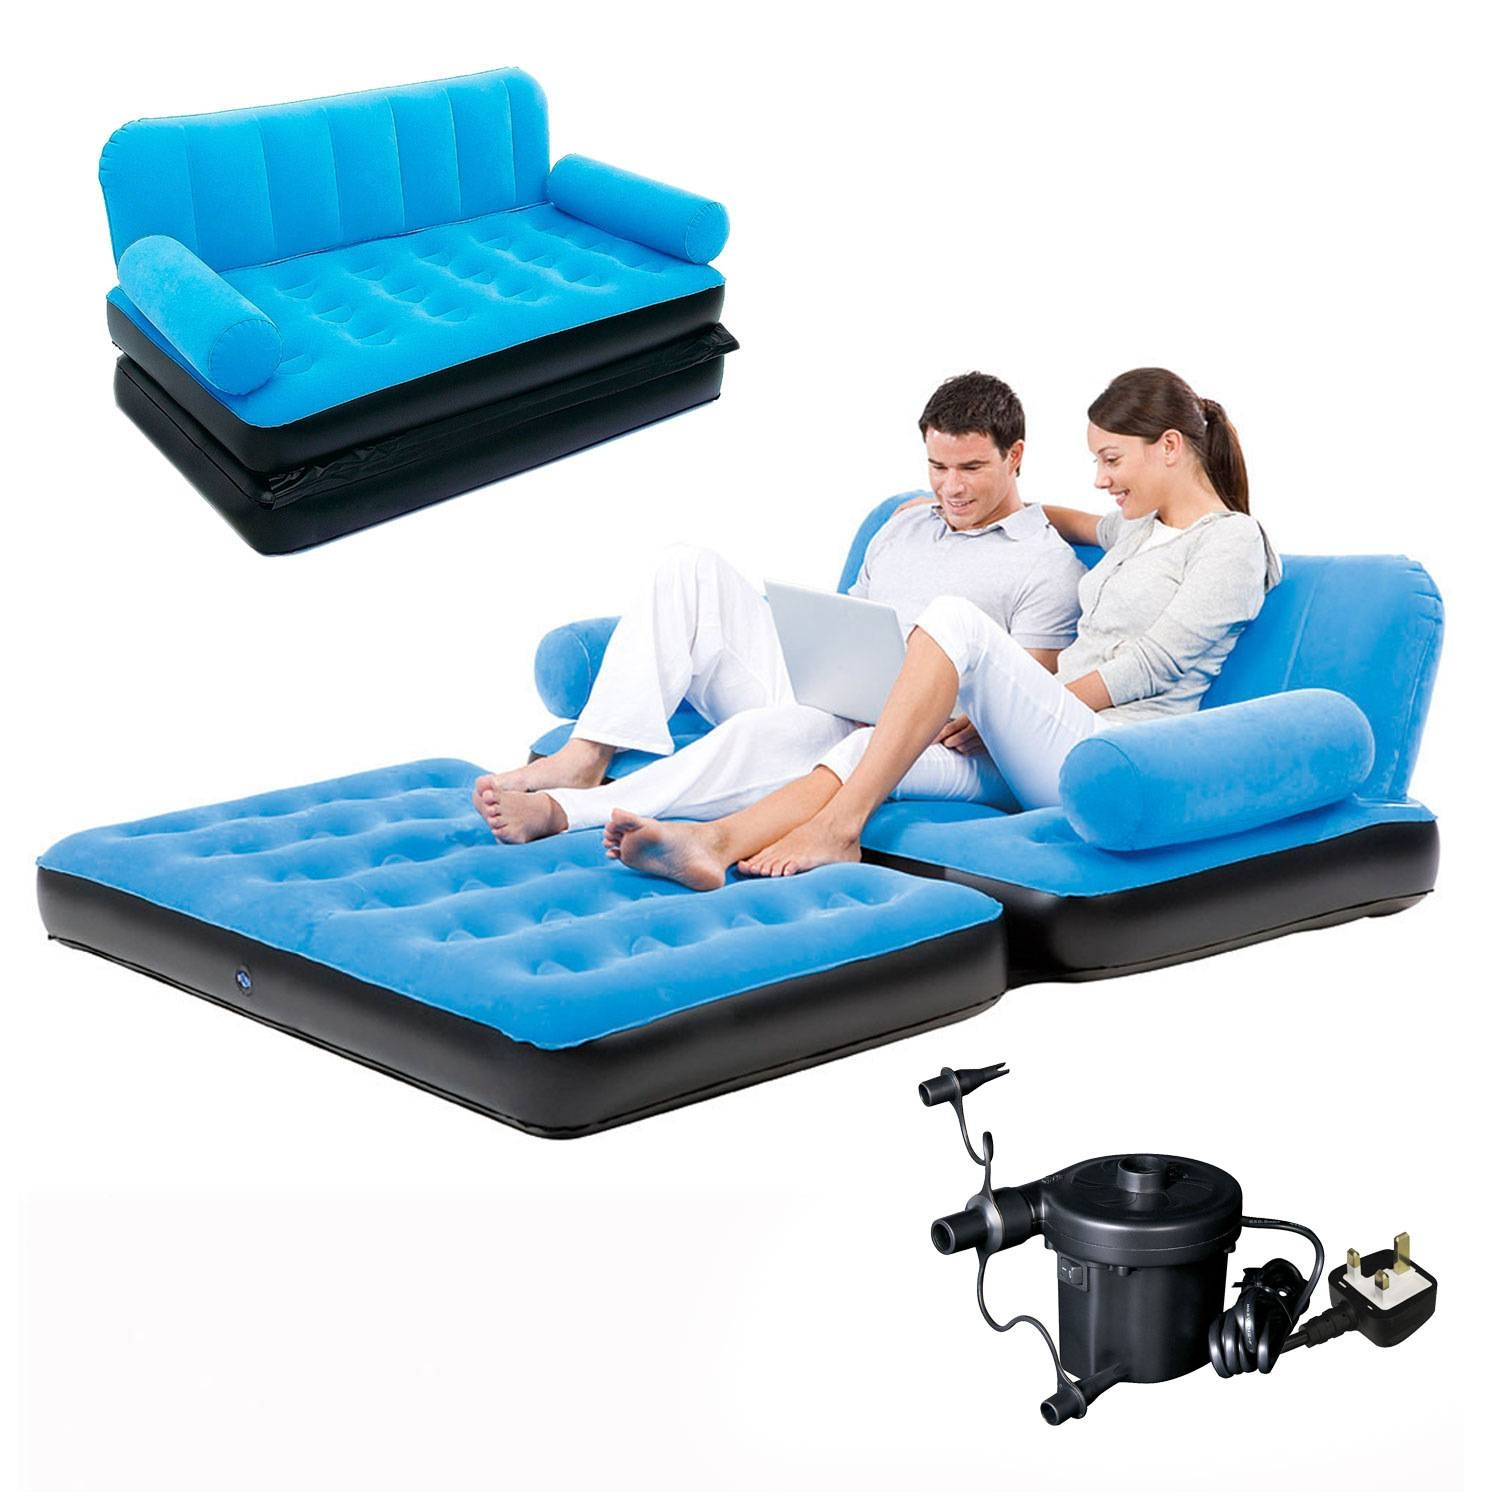 Furniture: Comfort Inflatable Furniture Walmart For Your Relaxing intended for Aqua Sofa Beds (Image 15 of 30)